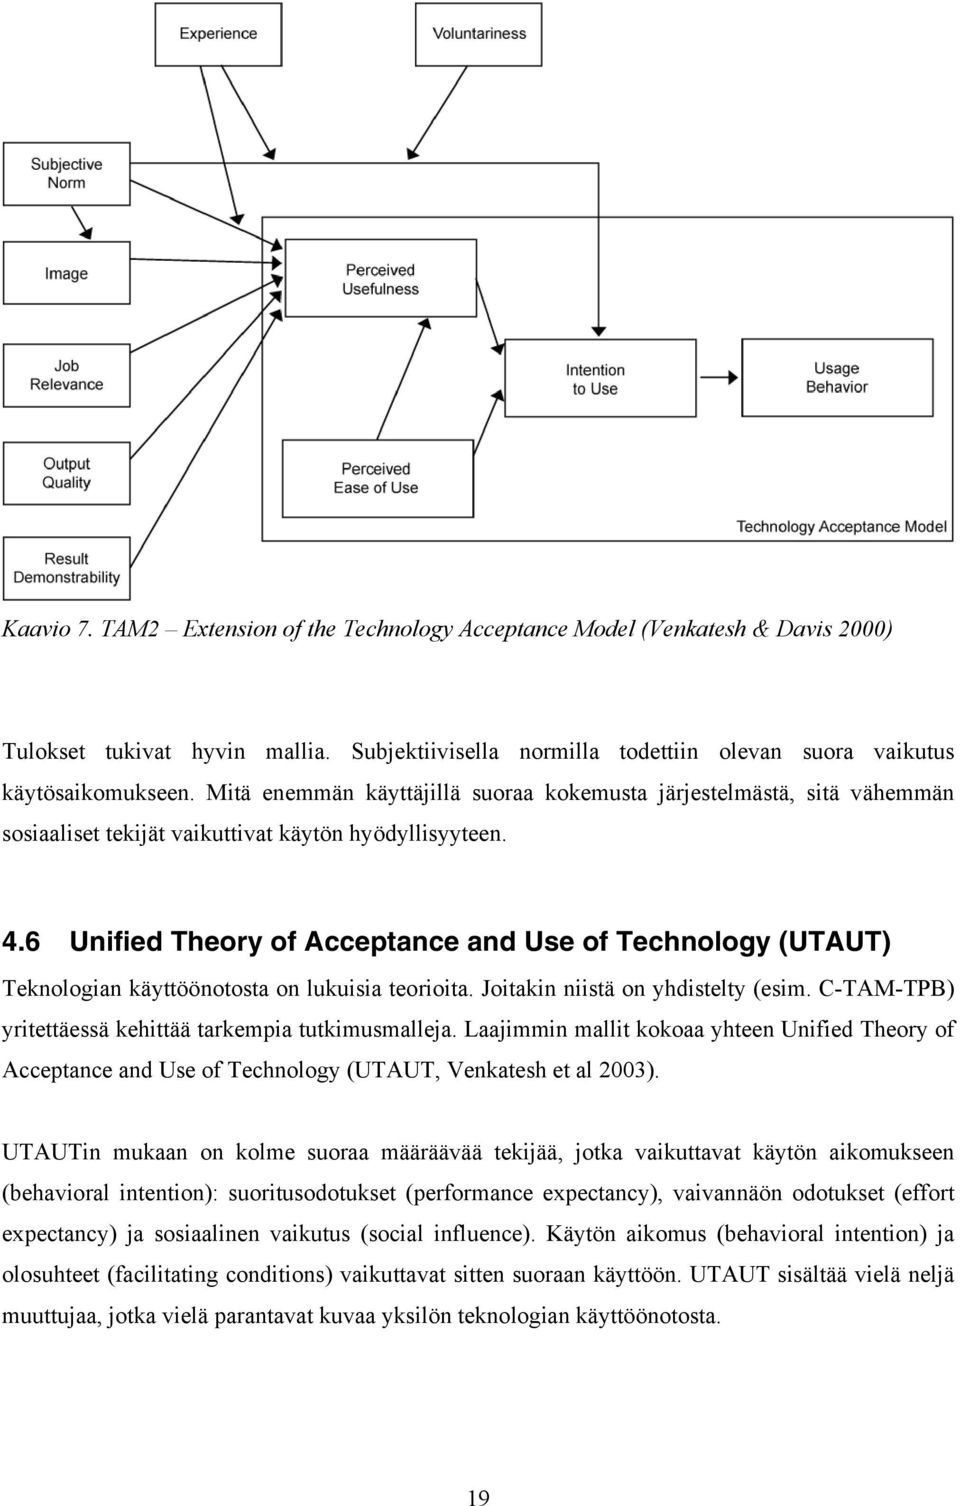 6 Unified Theory of Acceptance and Use of Technology (UTAUT) Teknologian käyttöönotosta on lukuisia teorioita. Joitakin niistä on yhdistelty (esim.